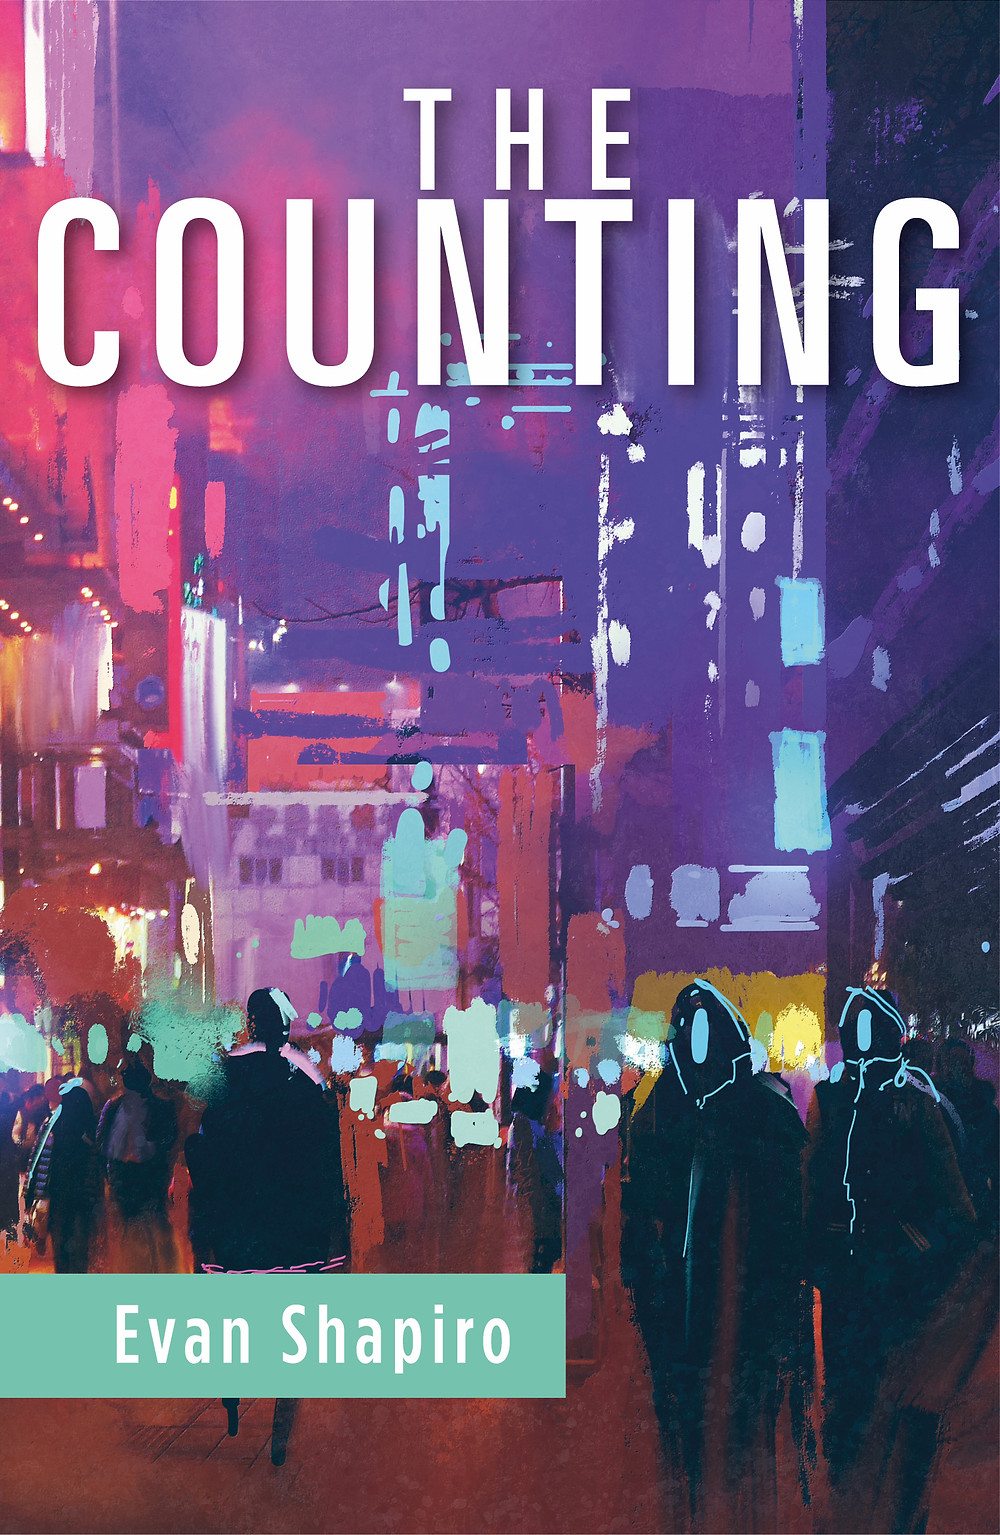 cover of The Counting by Evan Shapiro